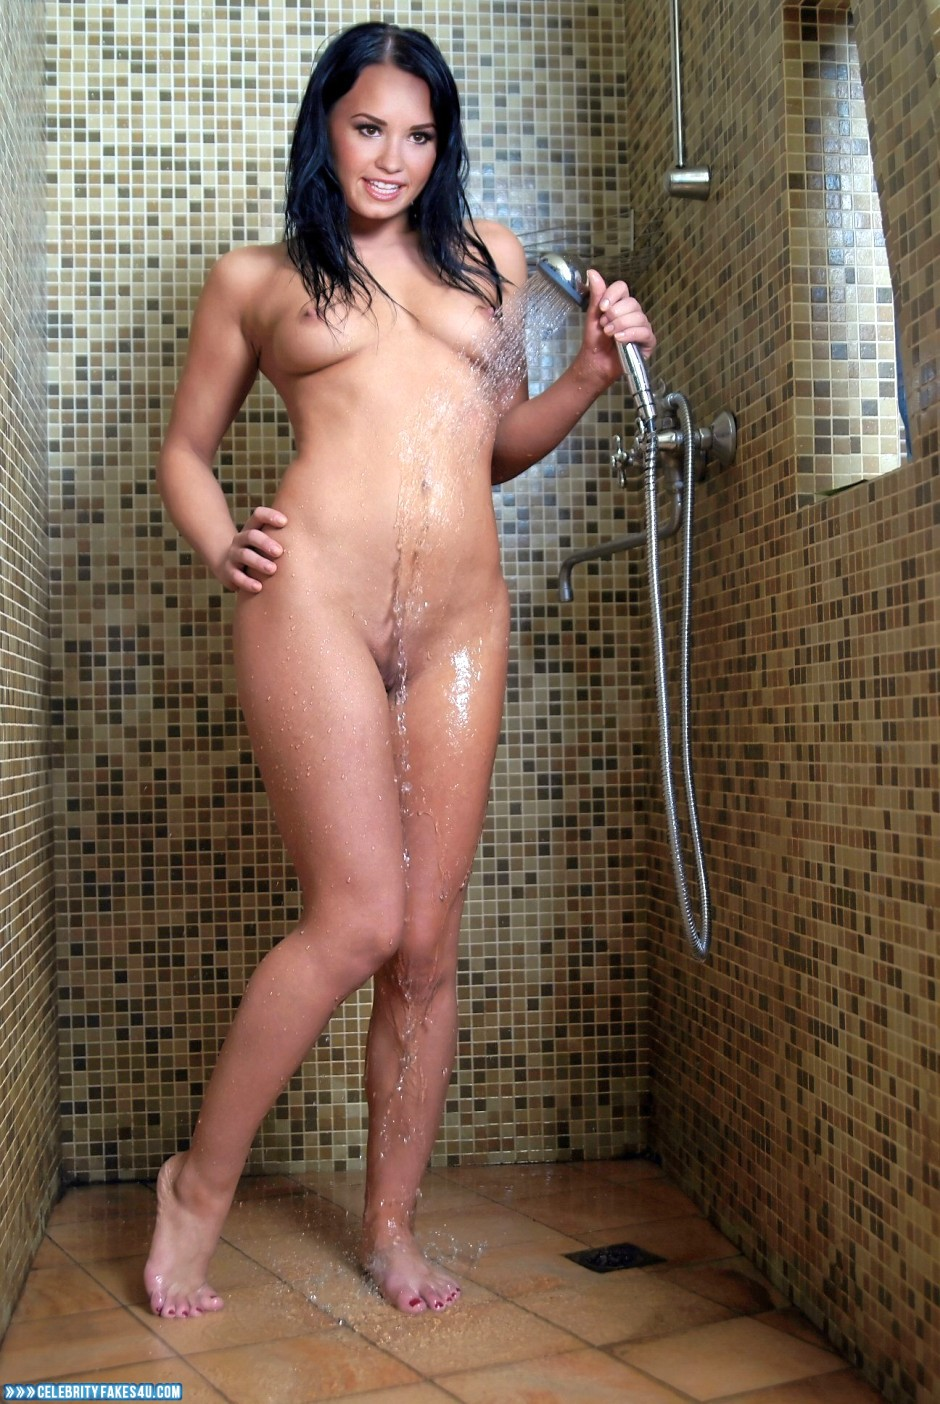 Lilith lust cream pie for a hot red head sep